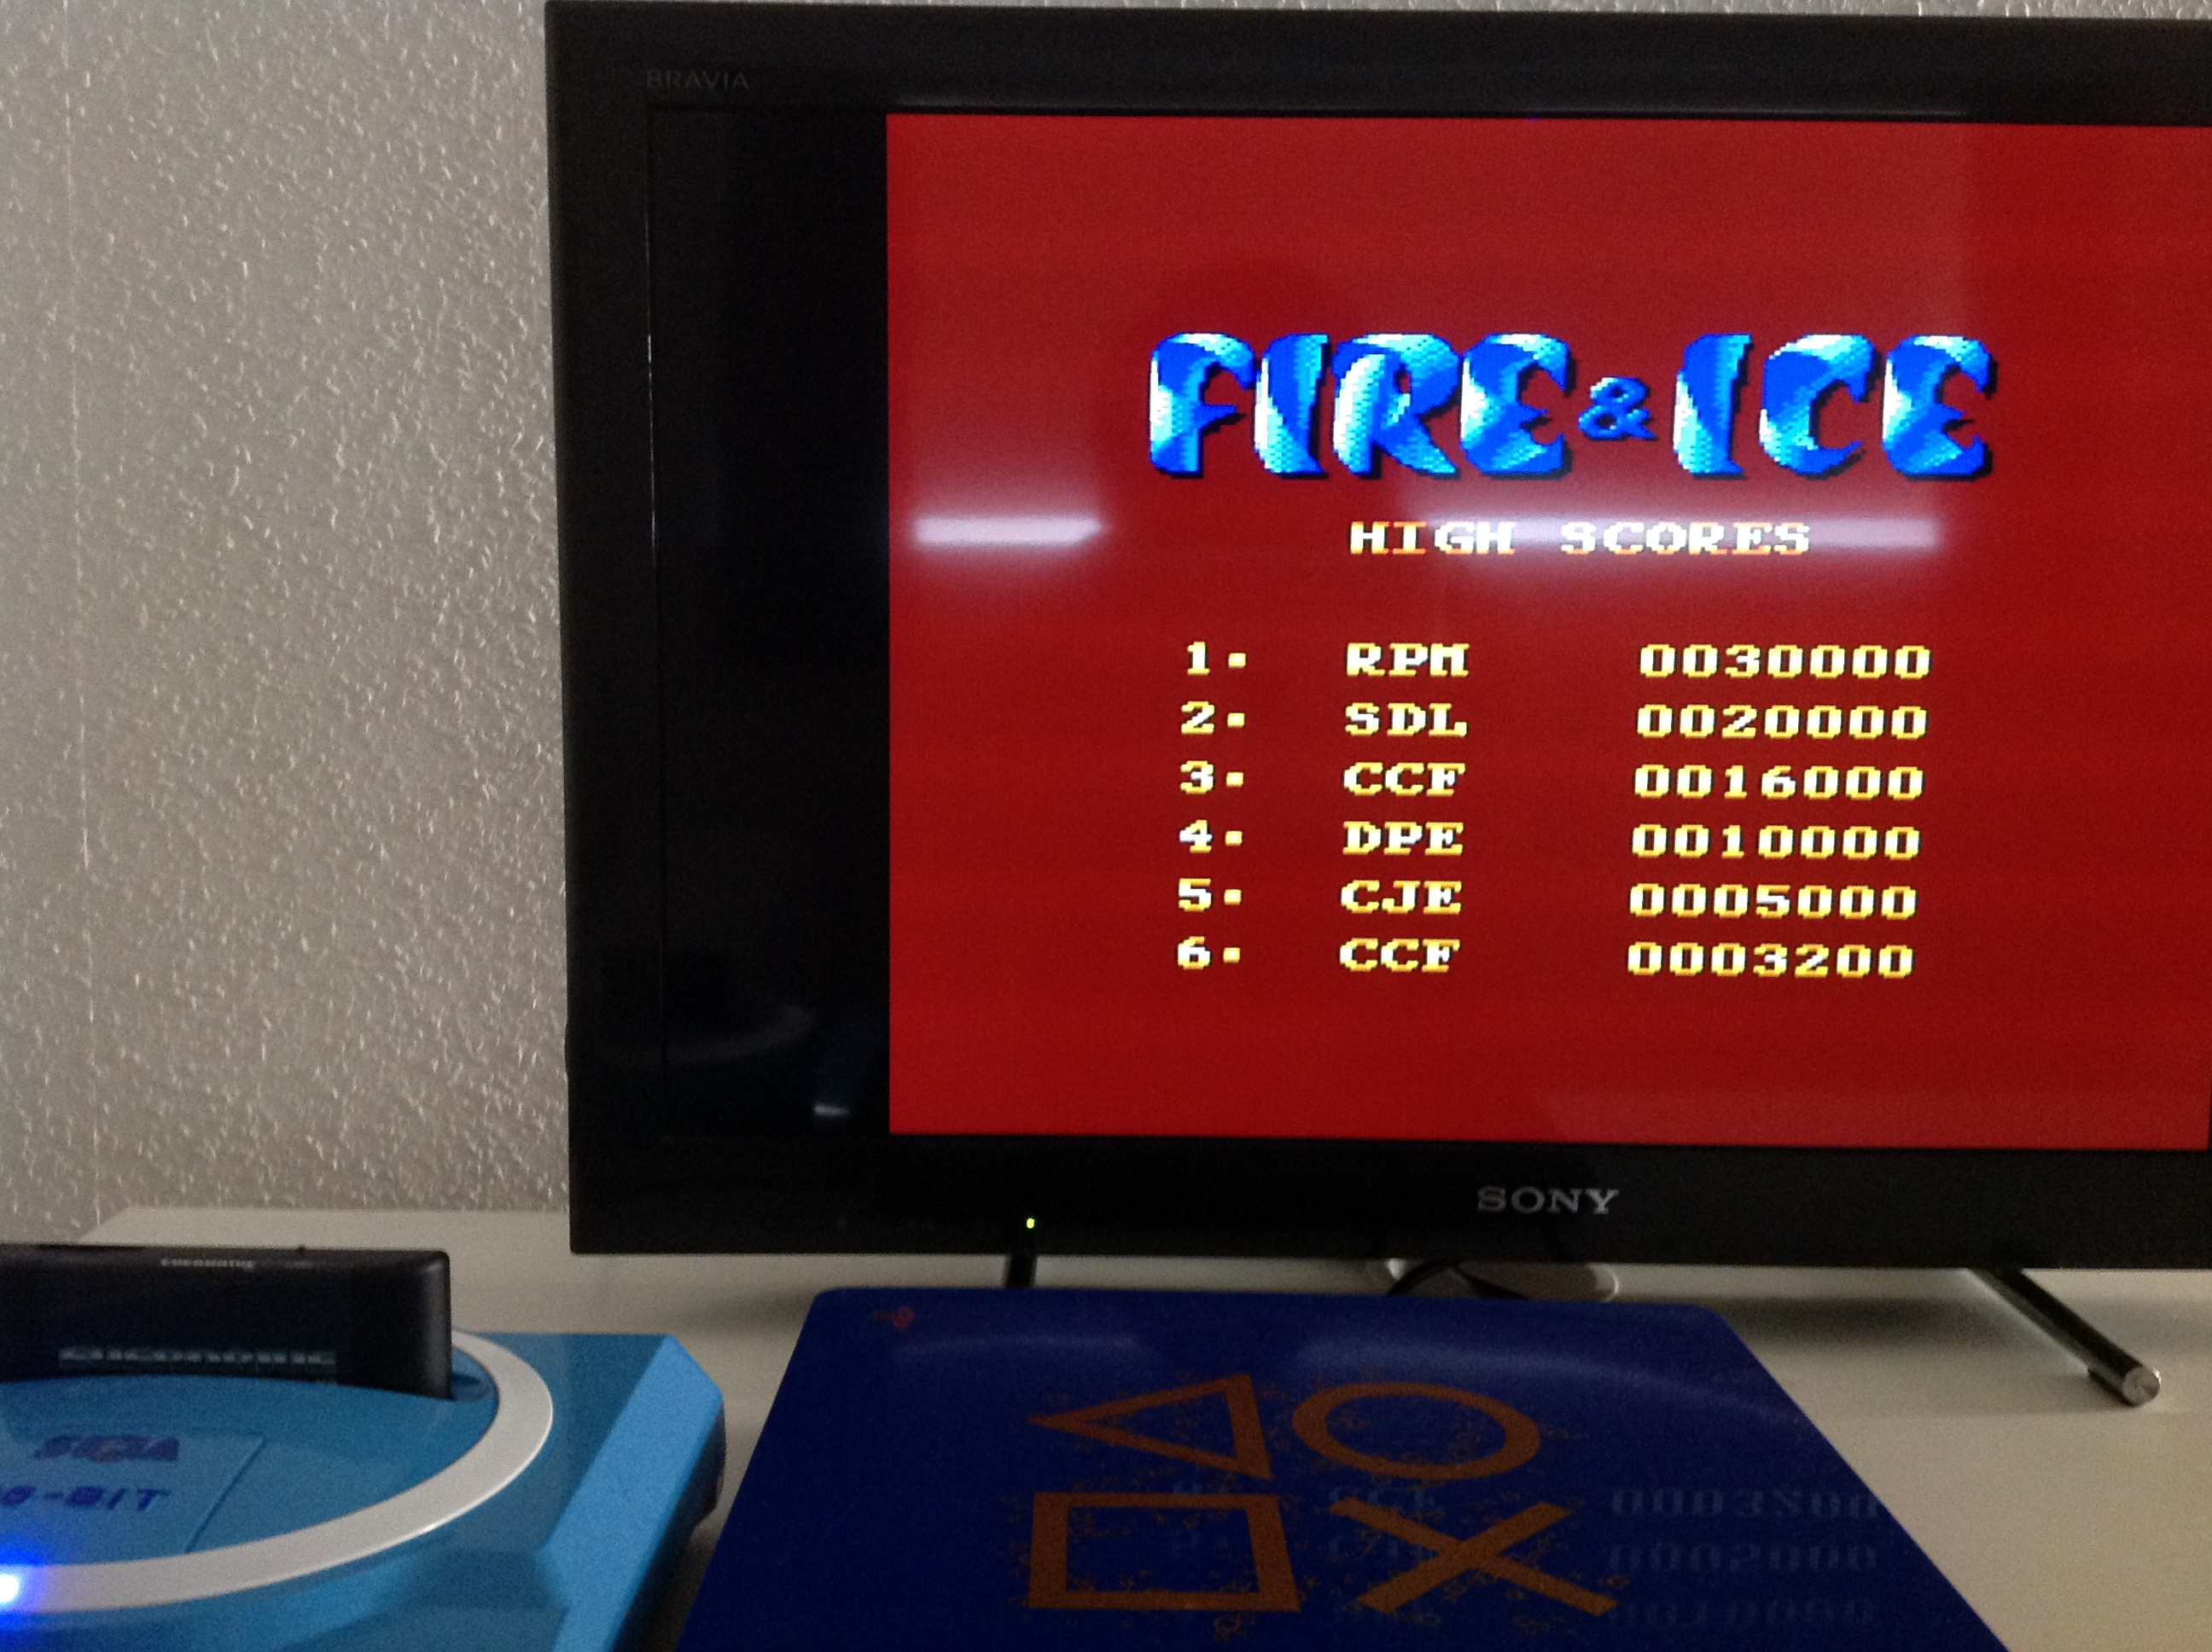 CoCoForest: Fire & Ice (Sega Master System) 16,000 points on 2018-07-24 03:09:15